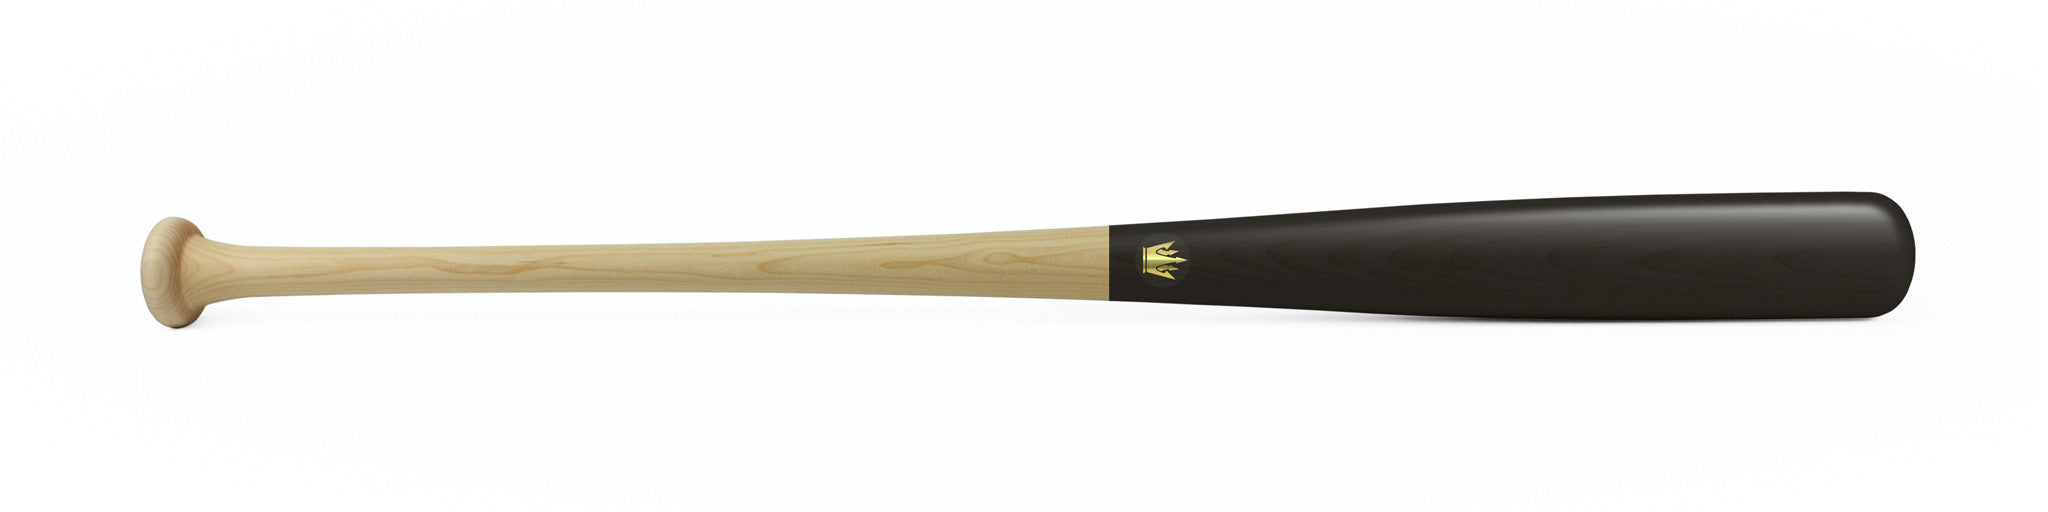 Wood bat - Birch model 421 Black Standard - 12